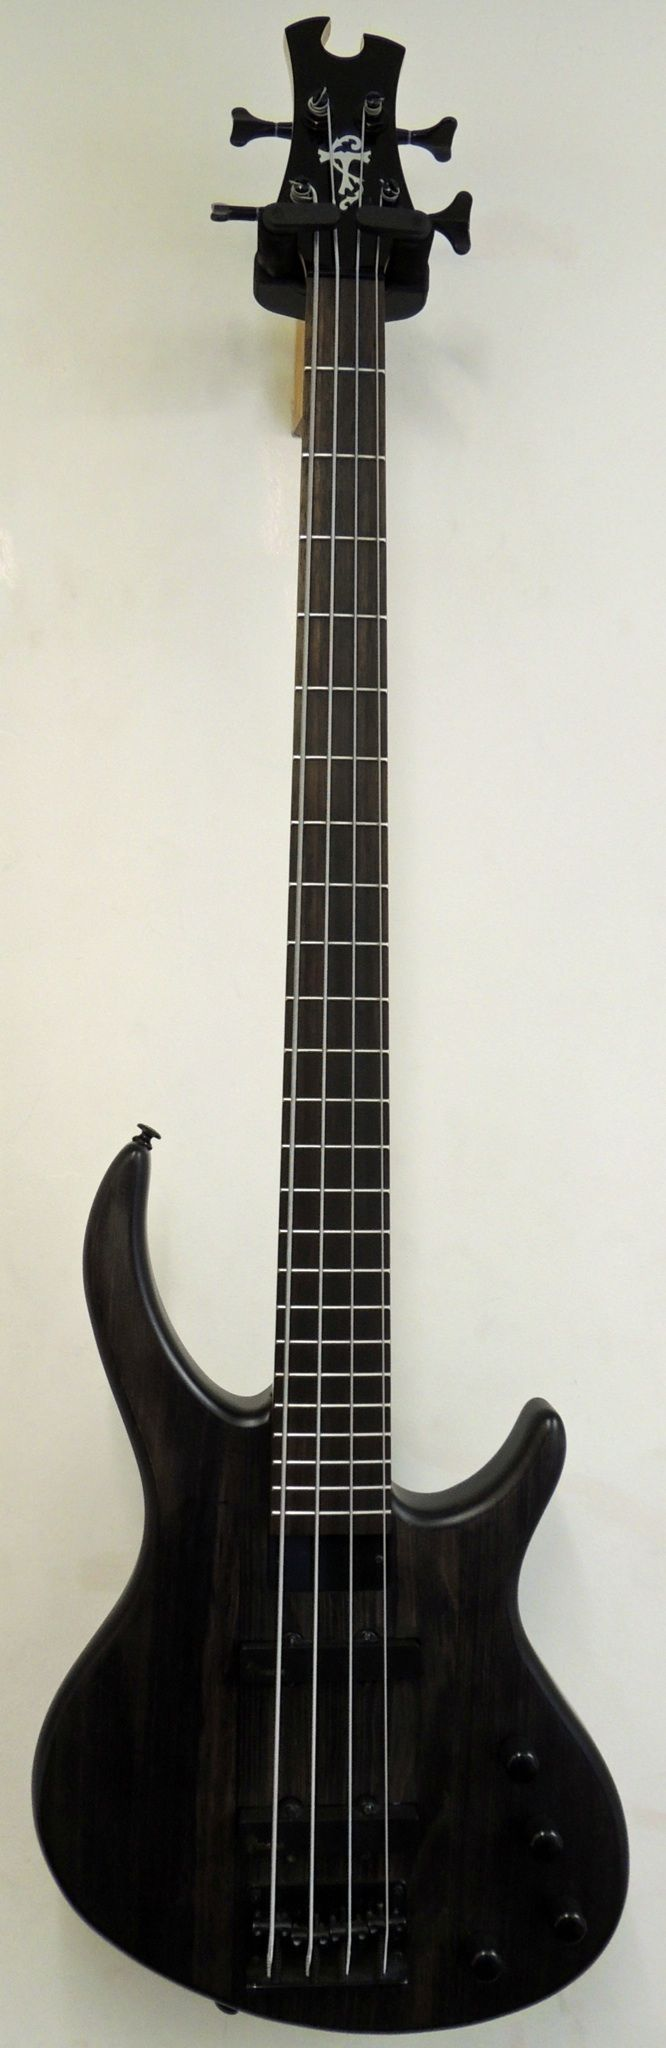 Epiphone Tobias Toby IV Deluxe Electric Bass Guitar